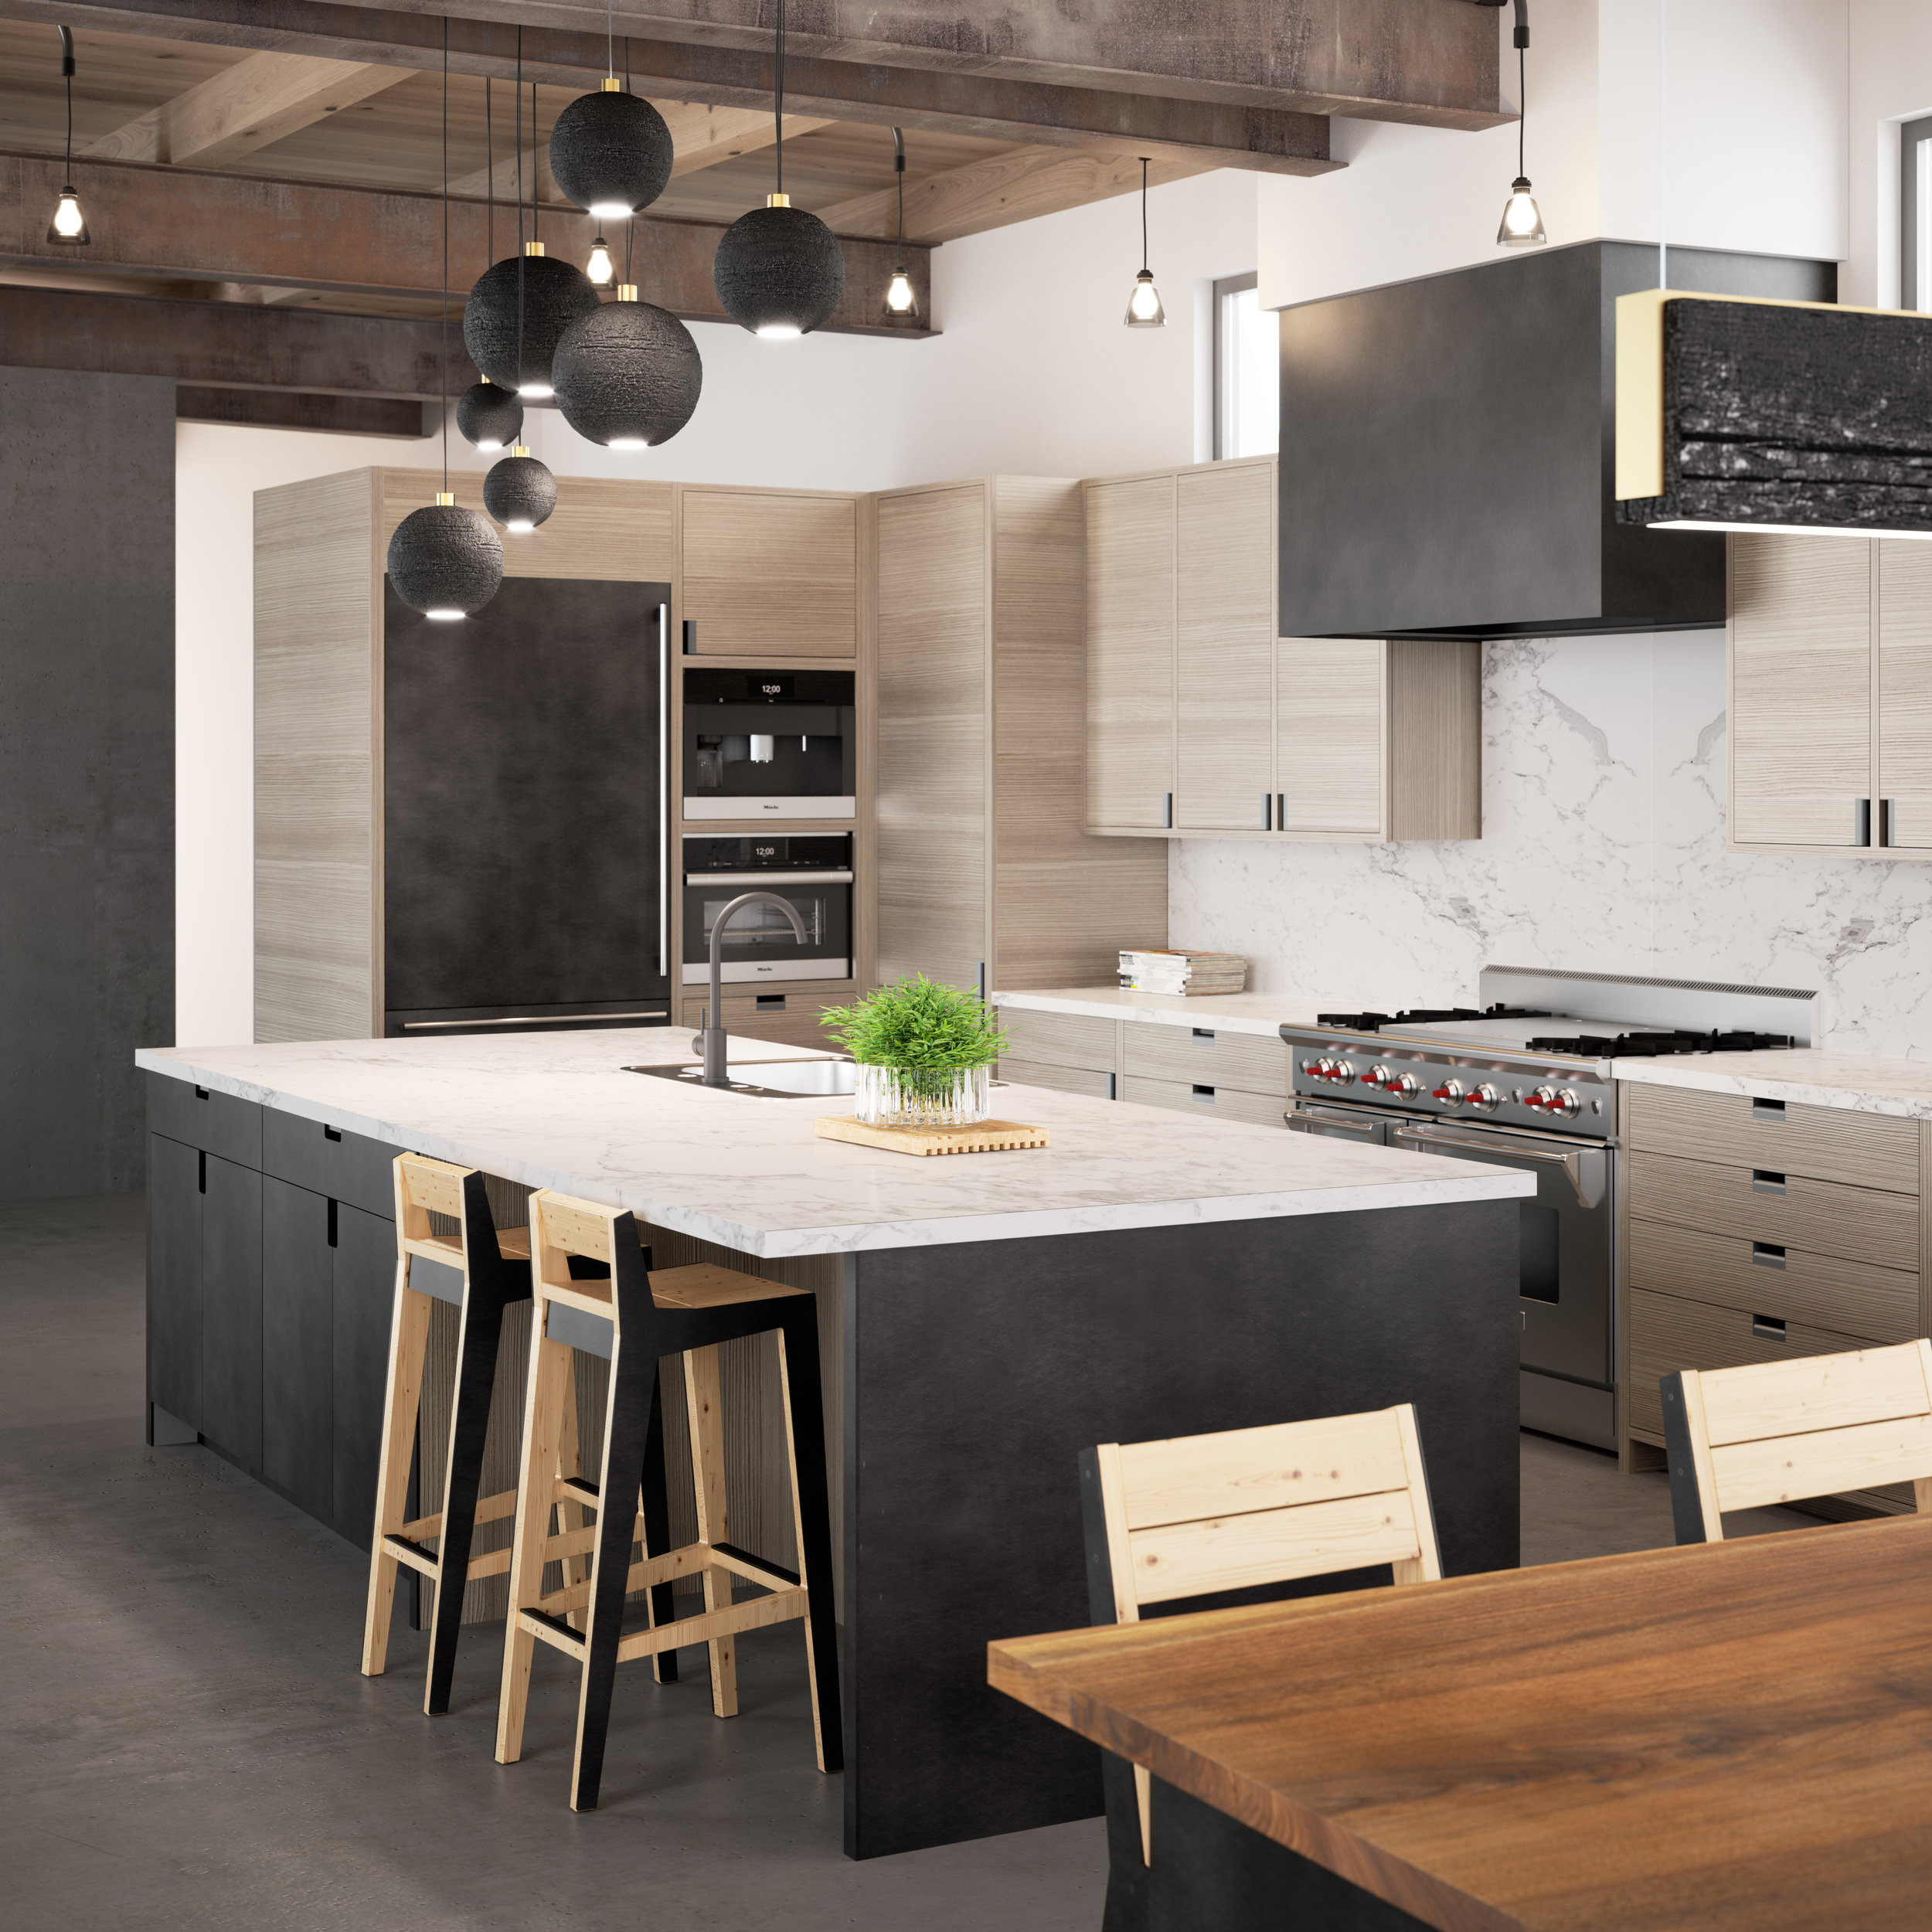 A modern kitchen featuring blackened steel and horizontal grain Larch cabinetry.